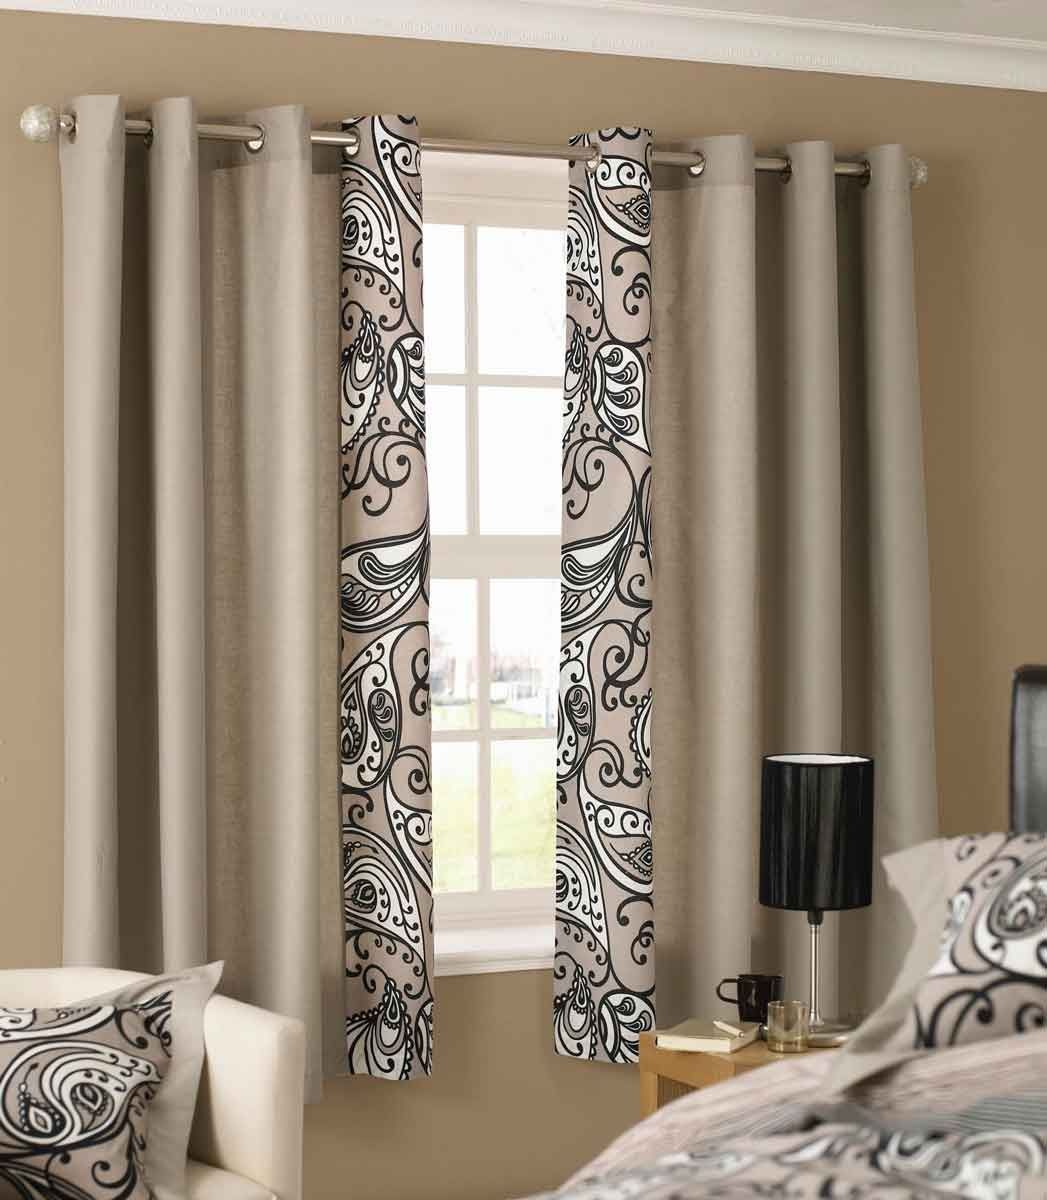 Curtain Patterns For Bedroom Window Window Curtain Designs